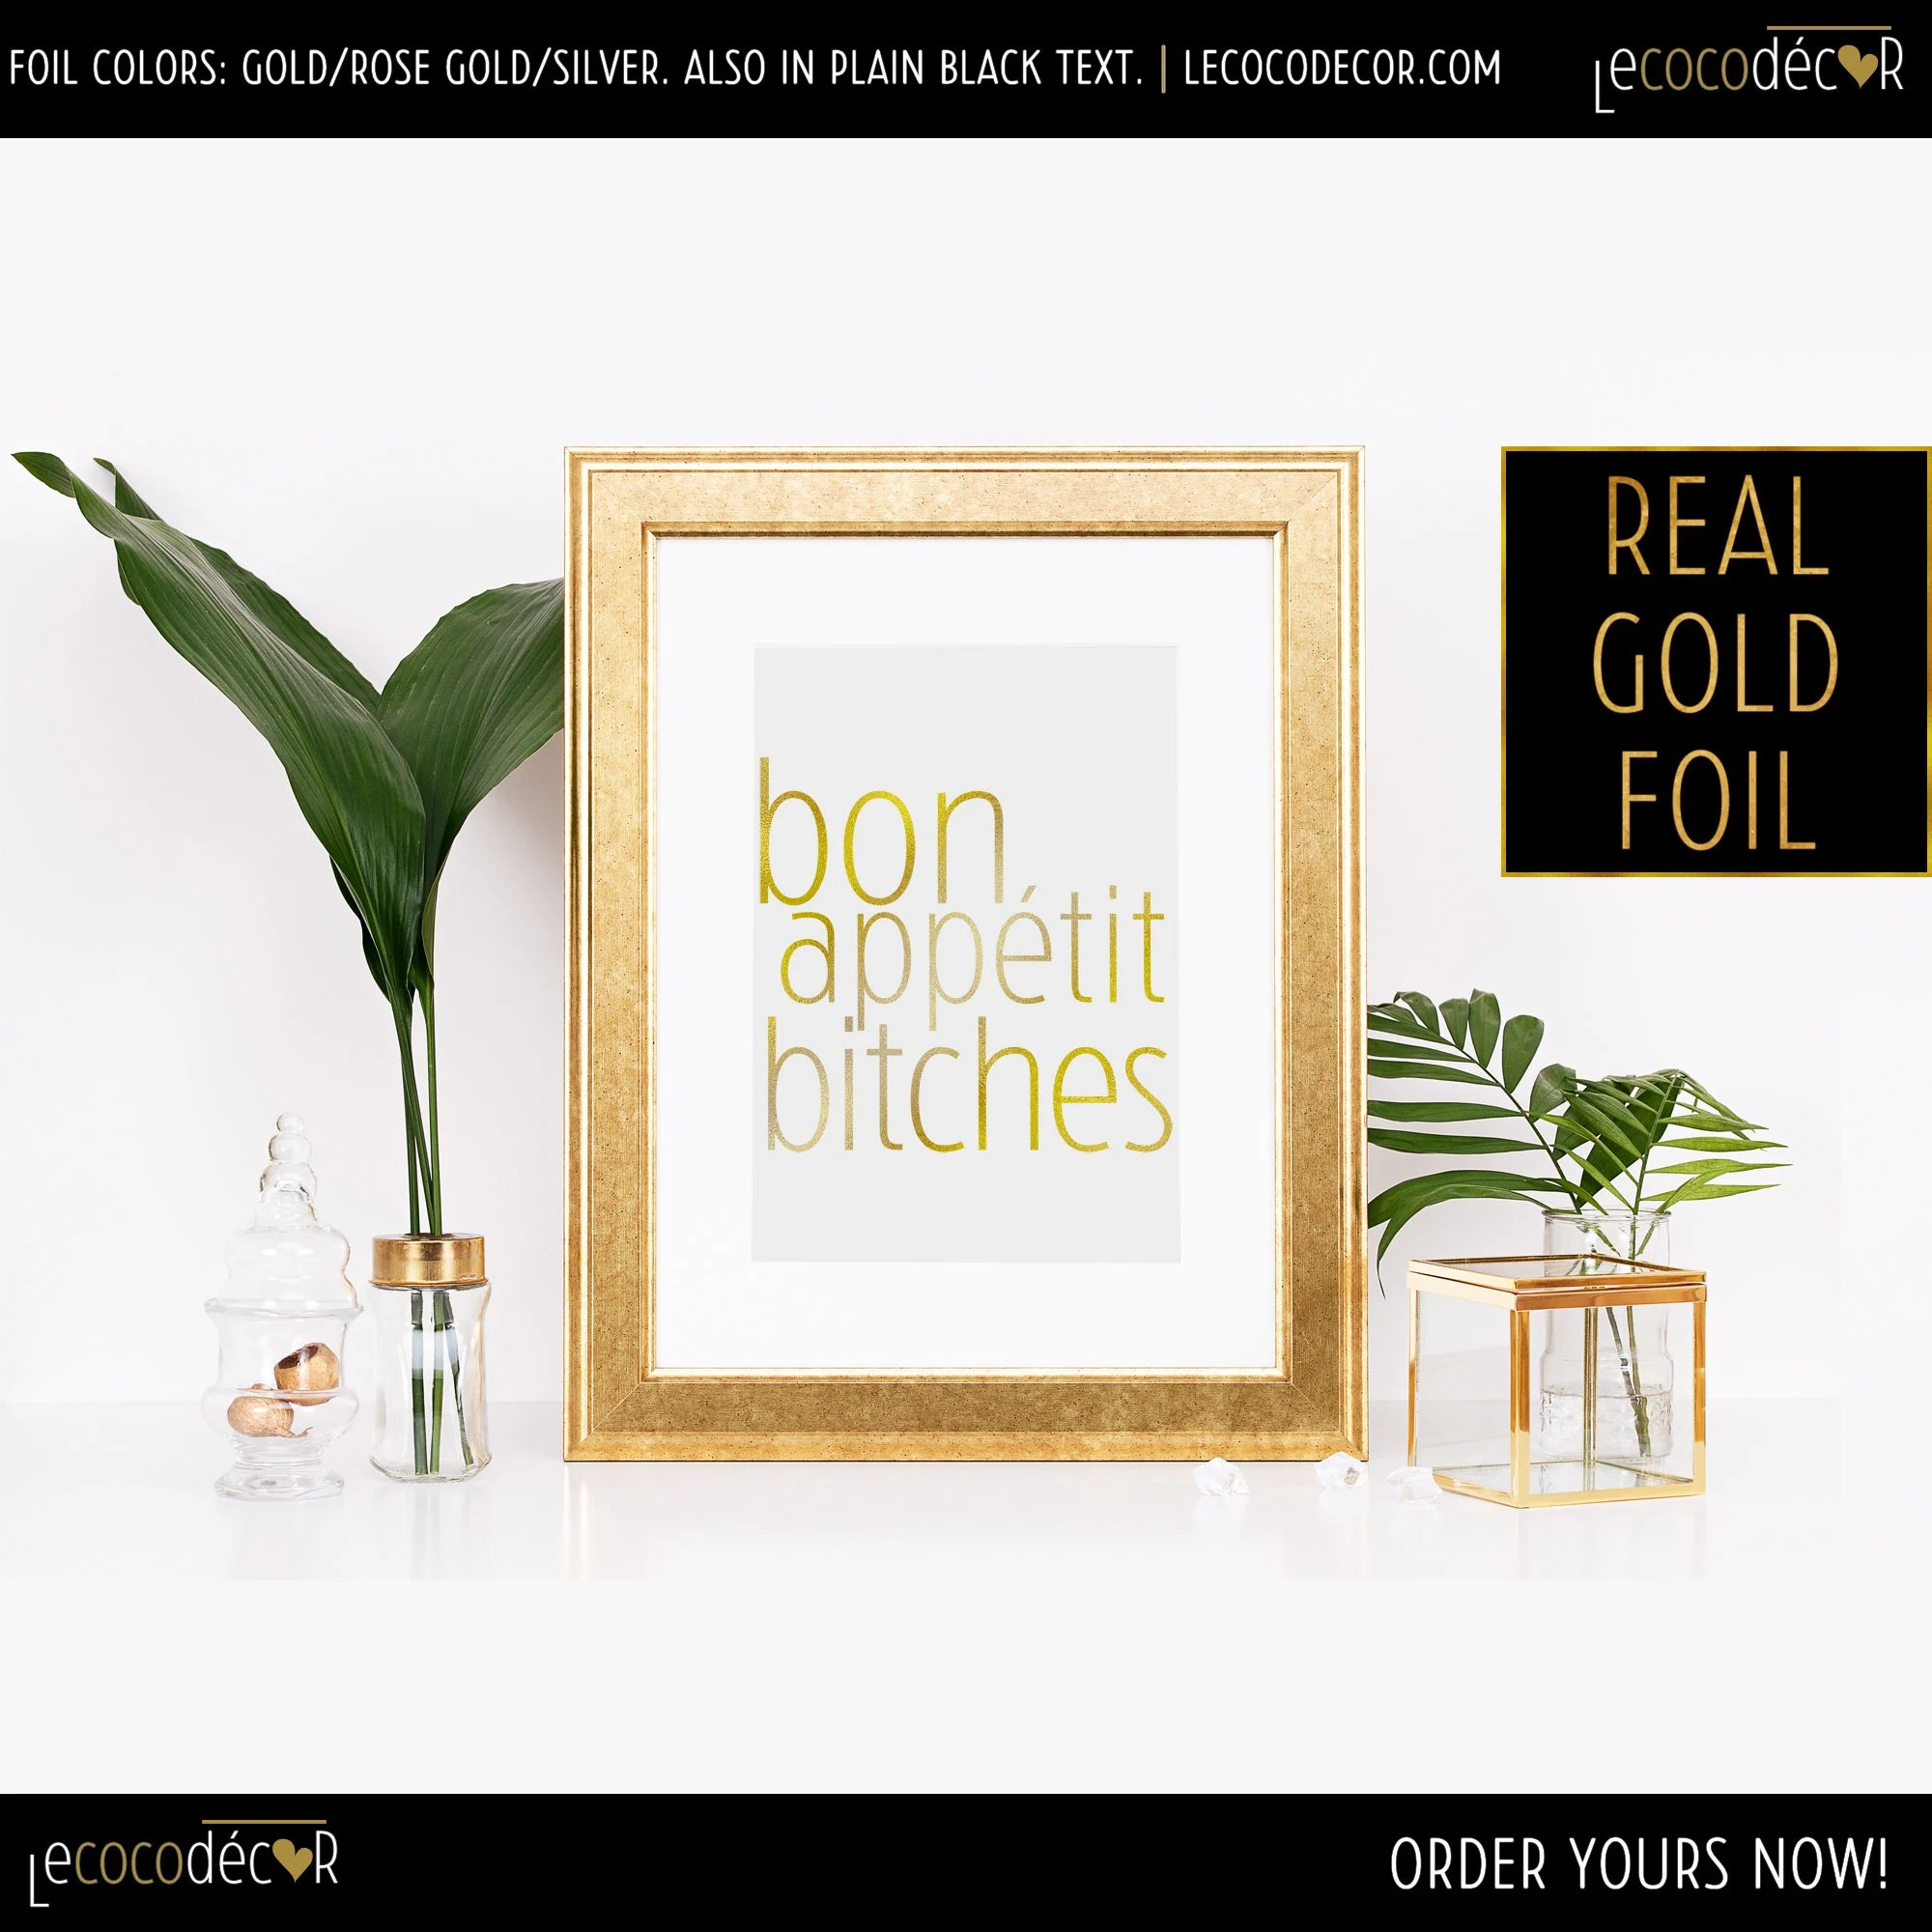 Countertop Signs Kitchen Bar Prints Bon Appétit Bitches Funny Kitchen Signs Kitchen Art Signs Kitchen Countertop Kitchen Bar Sign Kitchen Decor